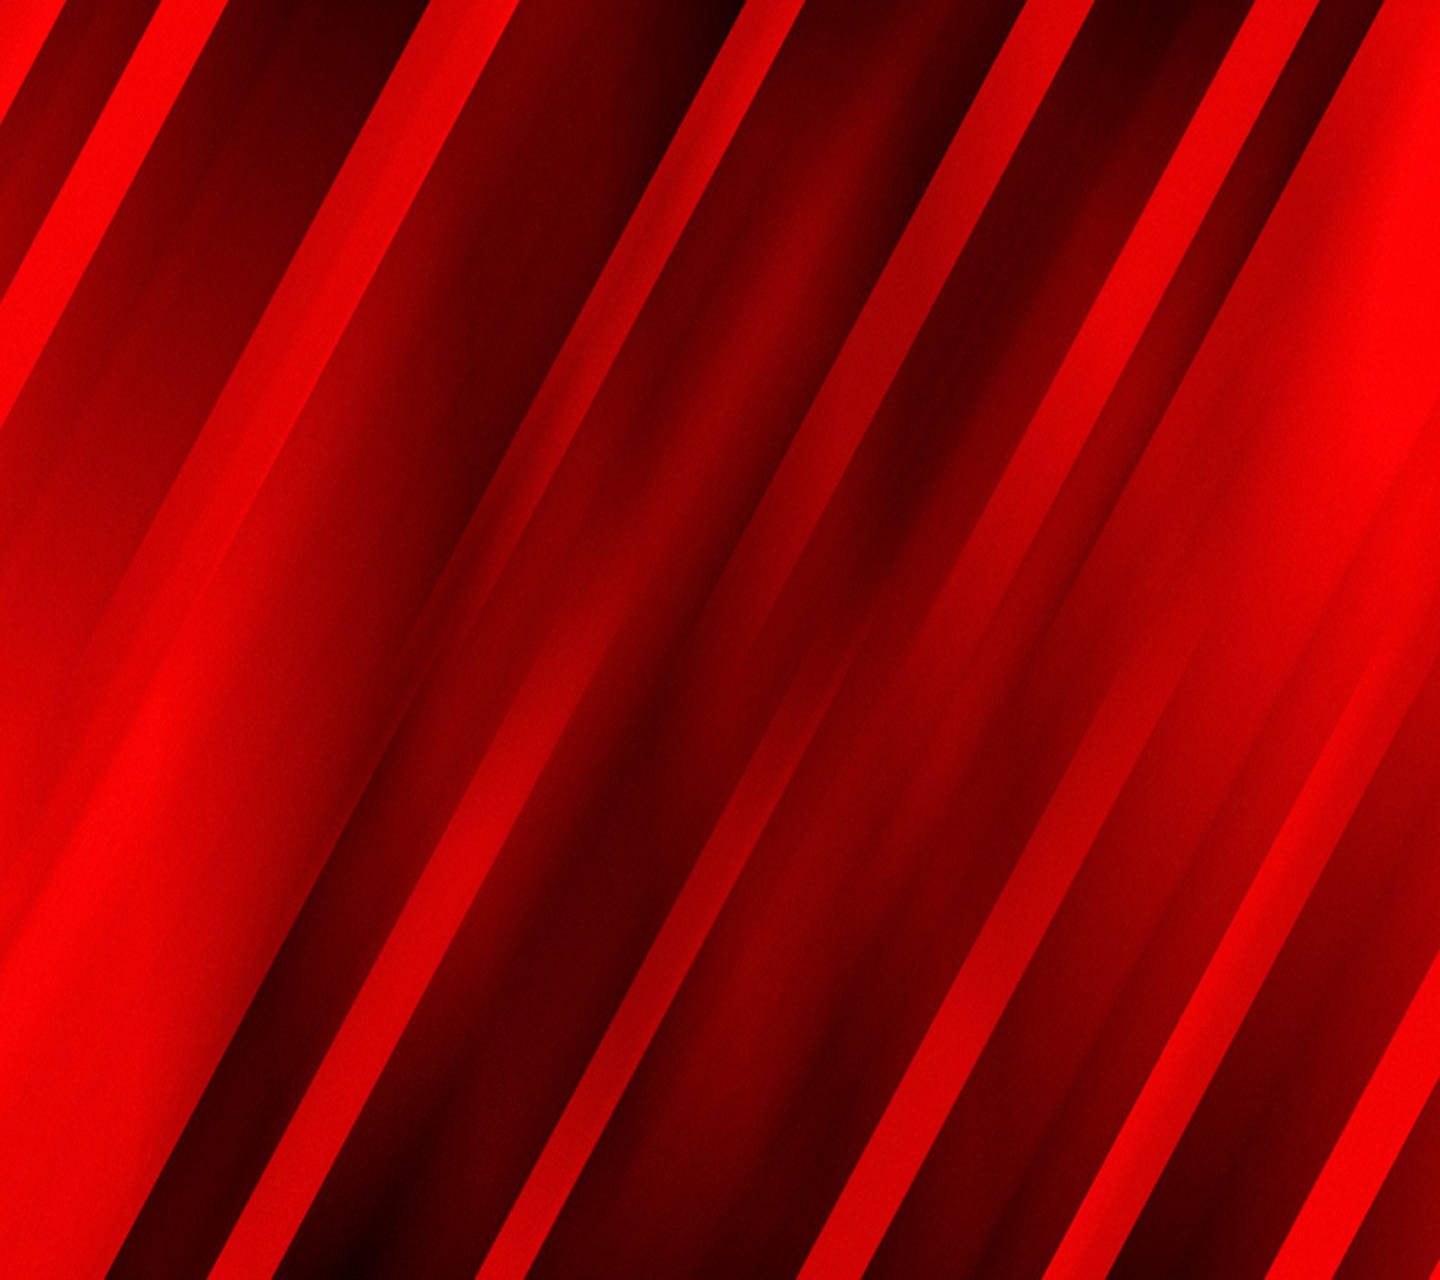 Red Background Images Powerpoint Backgrounds For Free Powerpoint